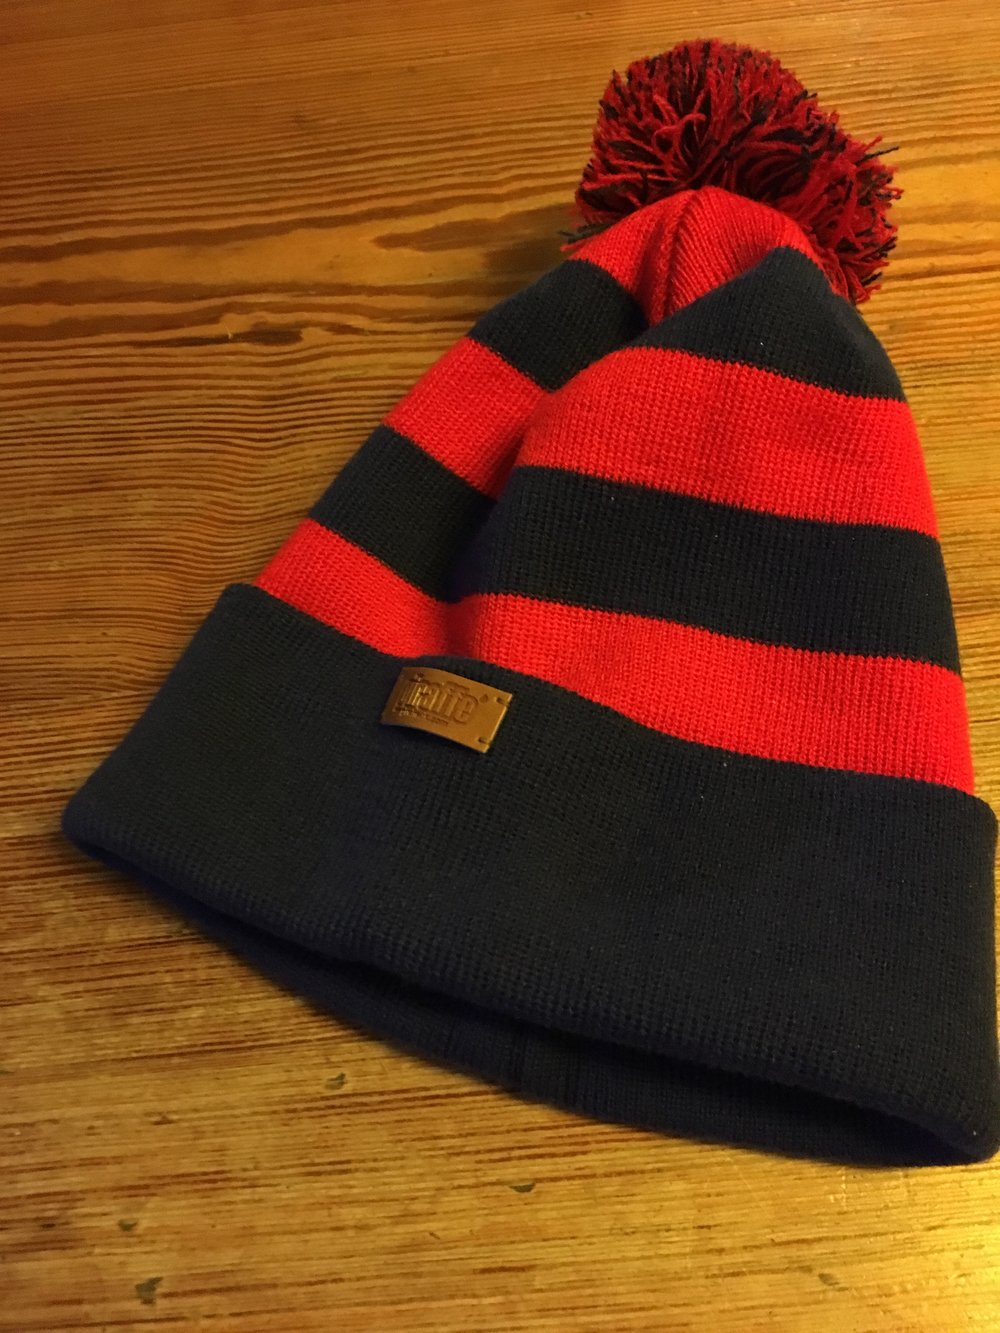 Our new bobble hats priced £15